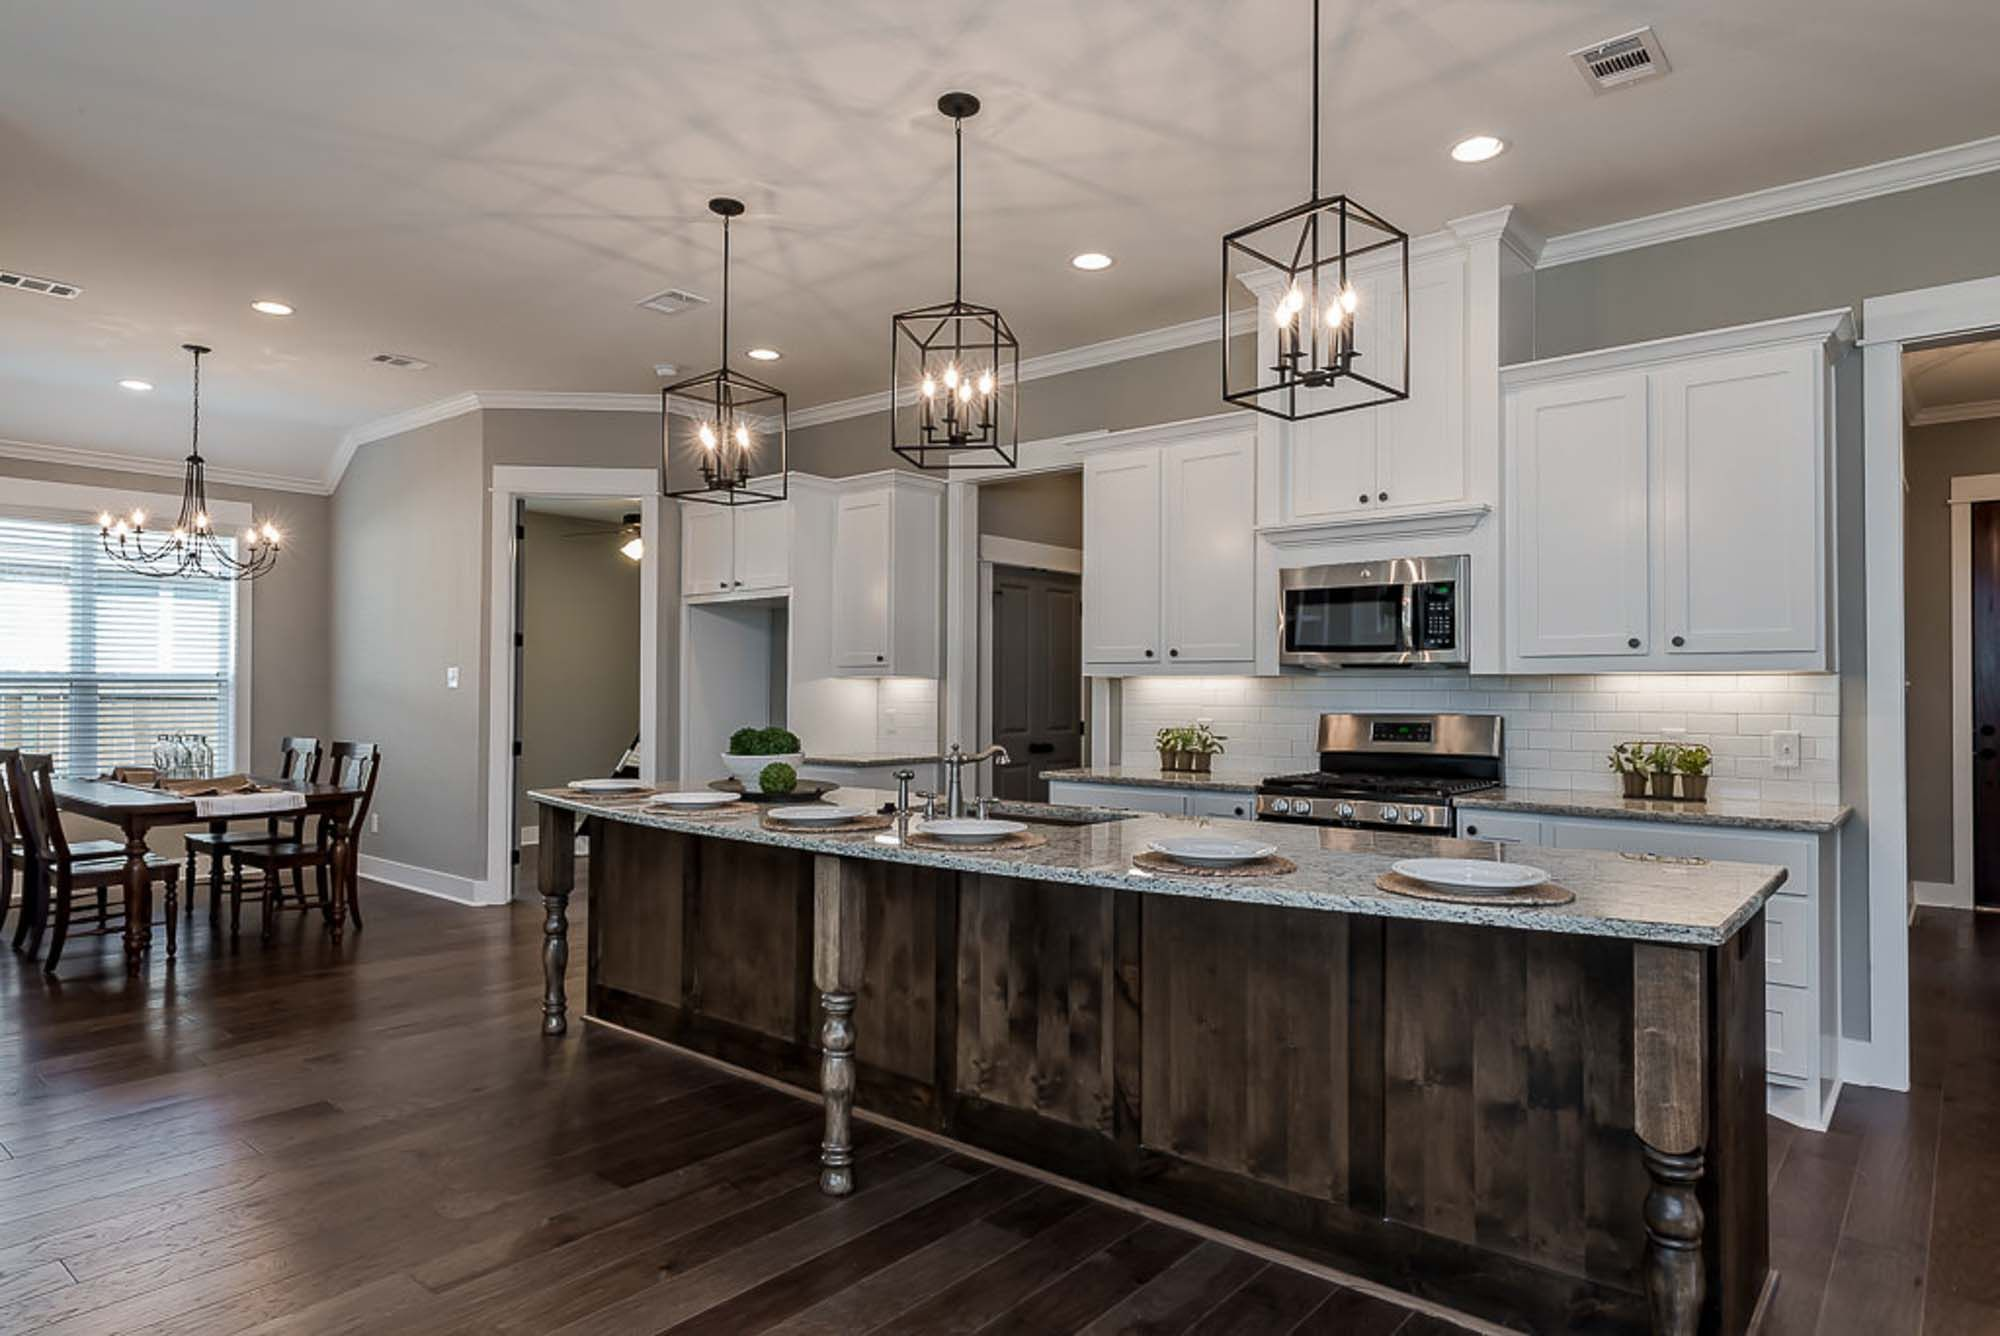 open concept kitchen with large island open concept kitchen kitchen remodel kitchen inspirations on kitchen remodel with island open concept id=39528